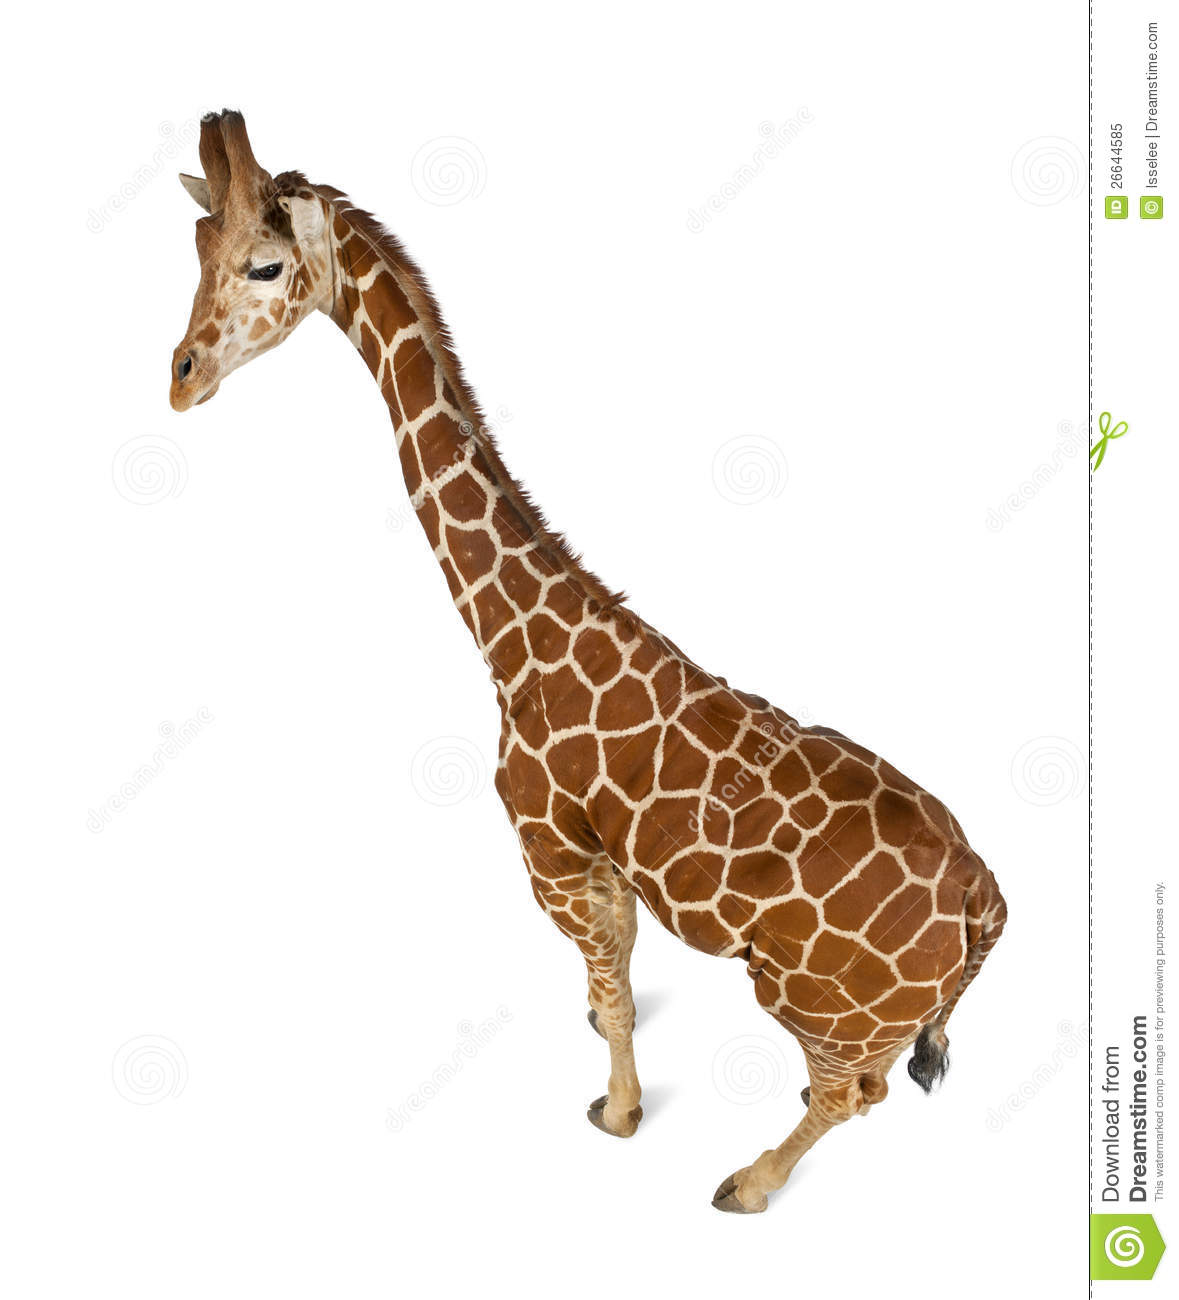 High Angle View Of Somali Giraffe Royalty Free Stock Photo.